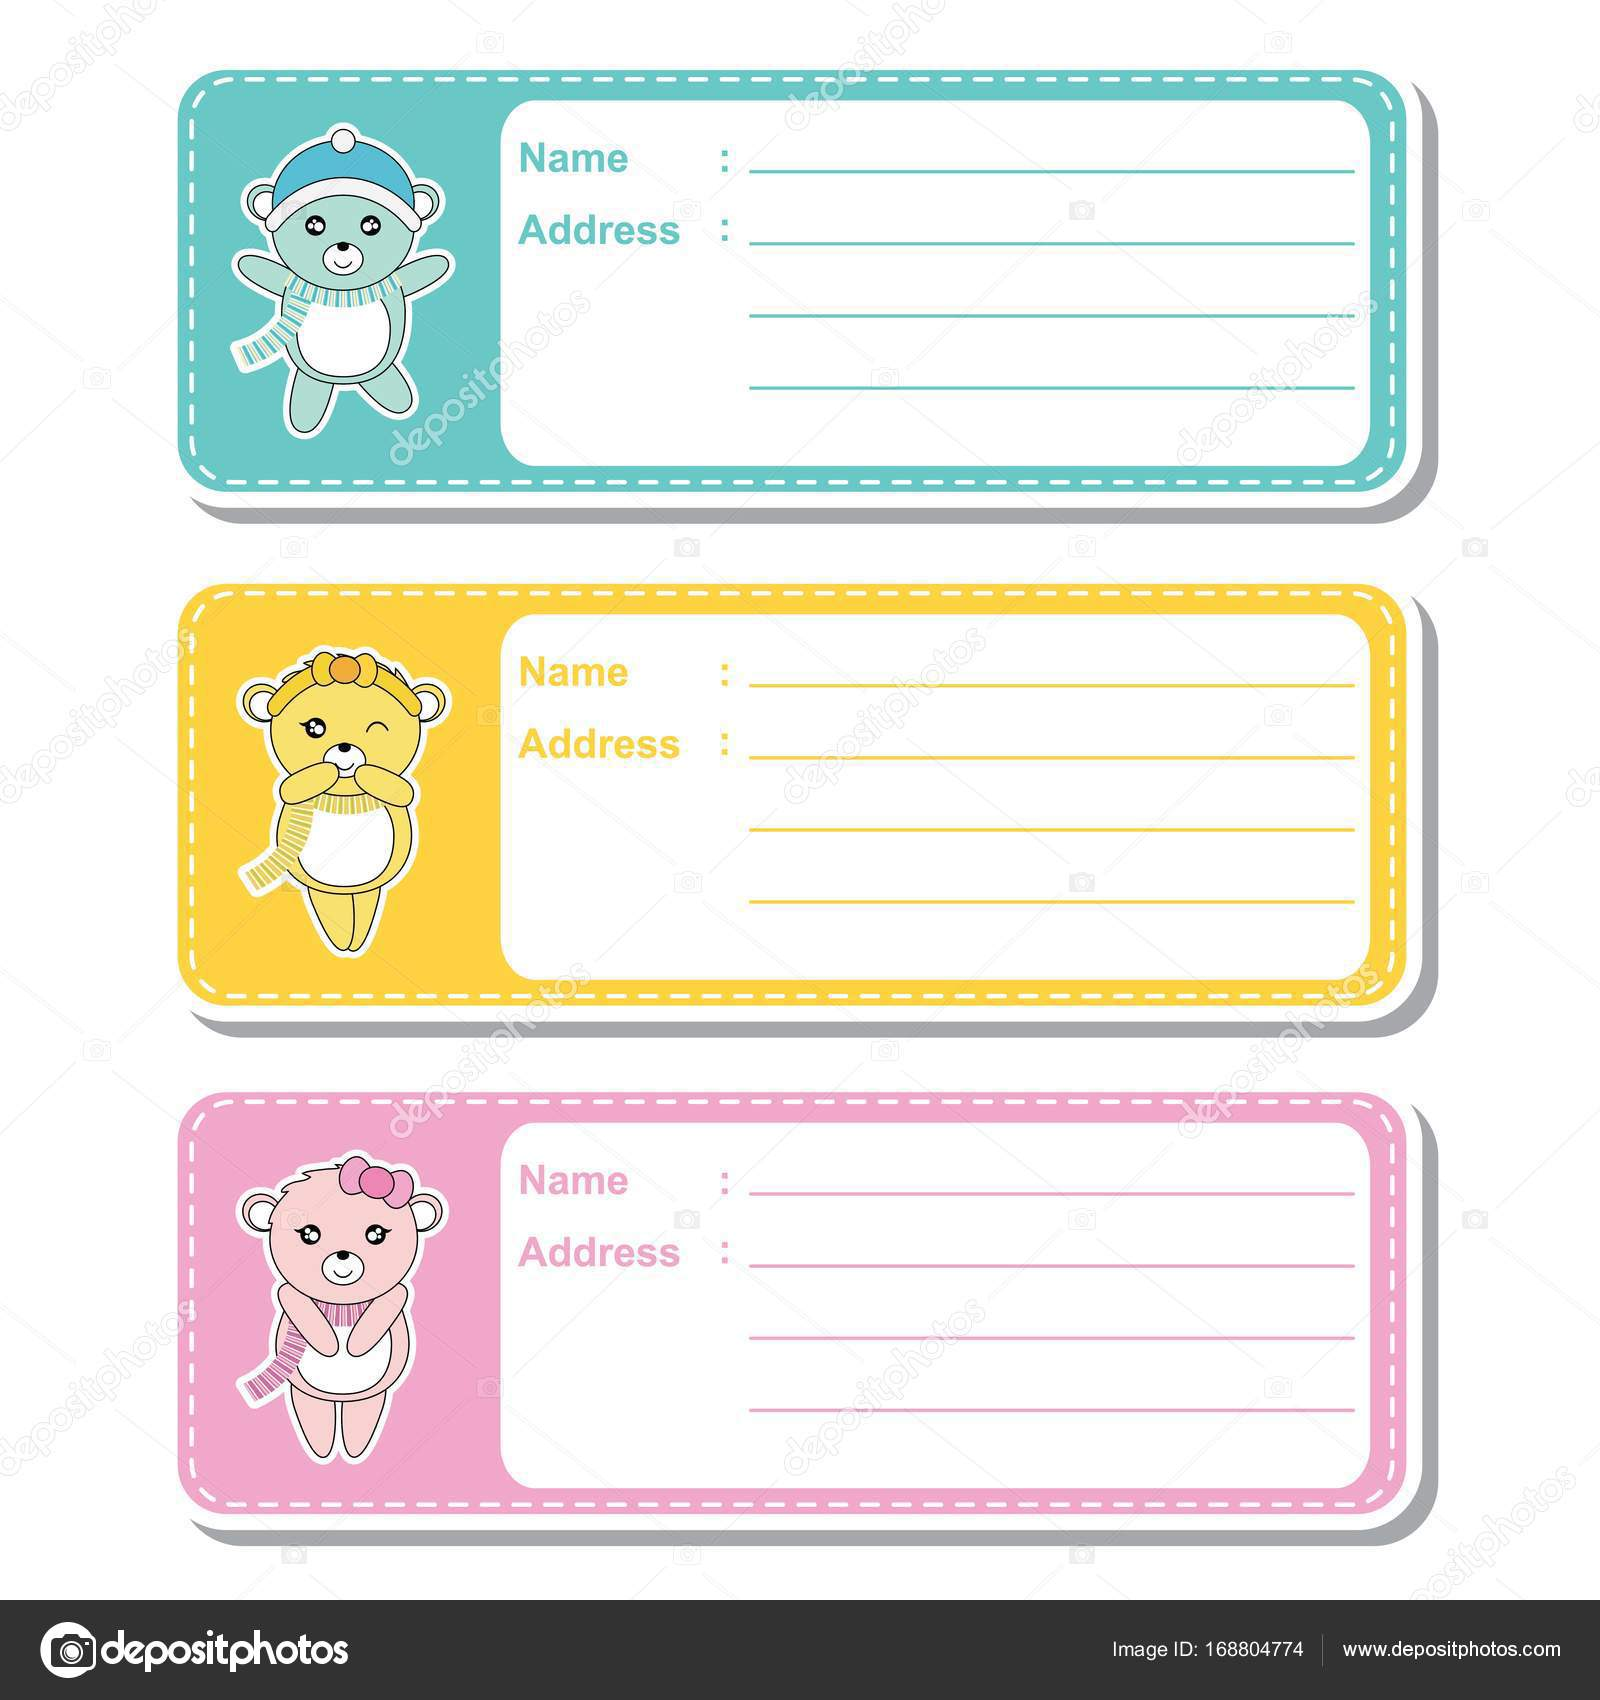 vector cartoon illustration with cute baby bears on colorful